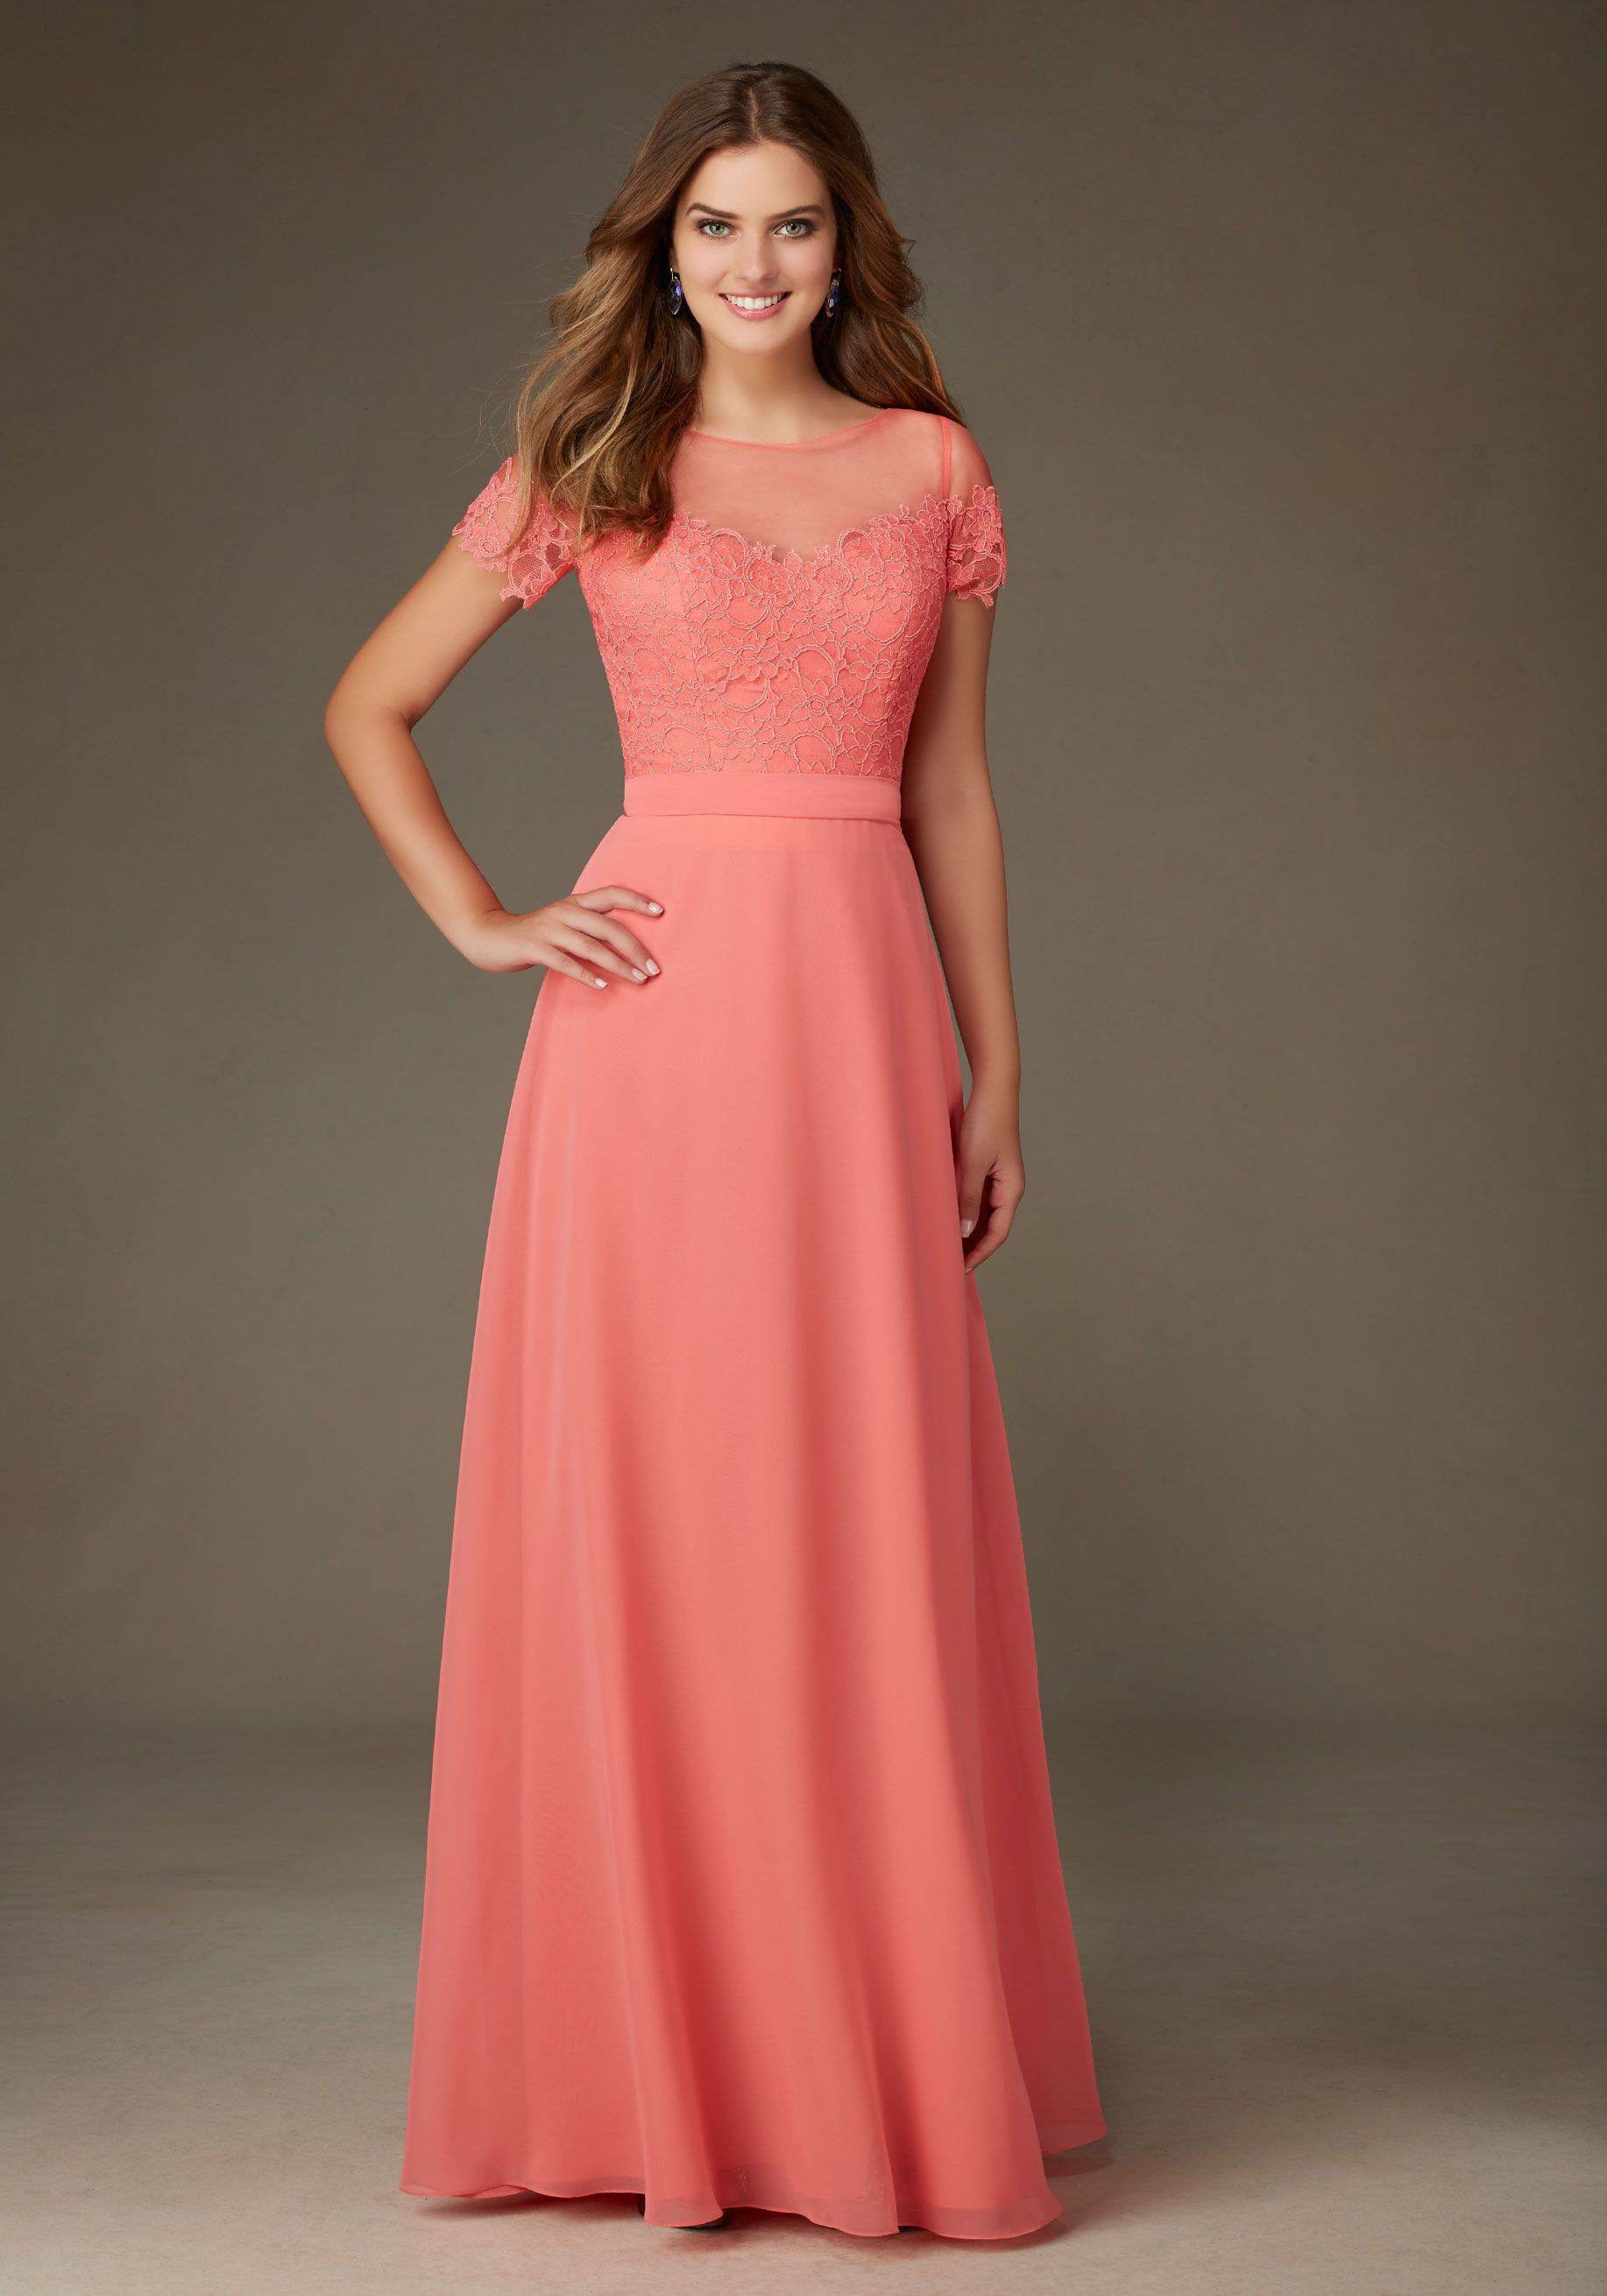 124 lace and chiffon illusion neckline bridesmaid dress designed 124 lace and chiffon illusion neckline bridesmaid dress designed by madeline gardner shown in coral ombrellifo Choice Image